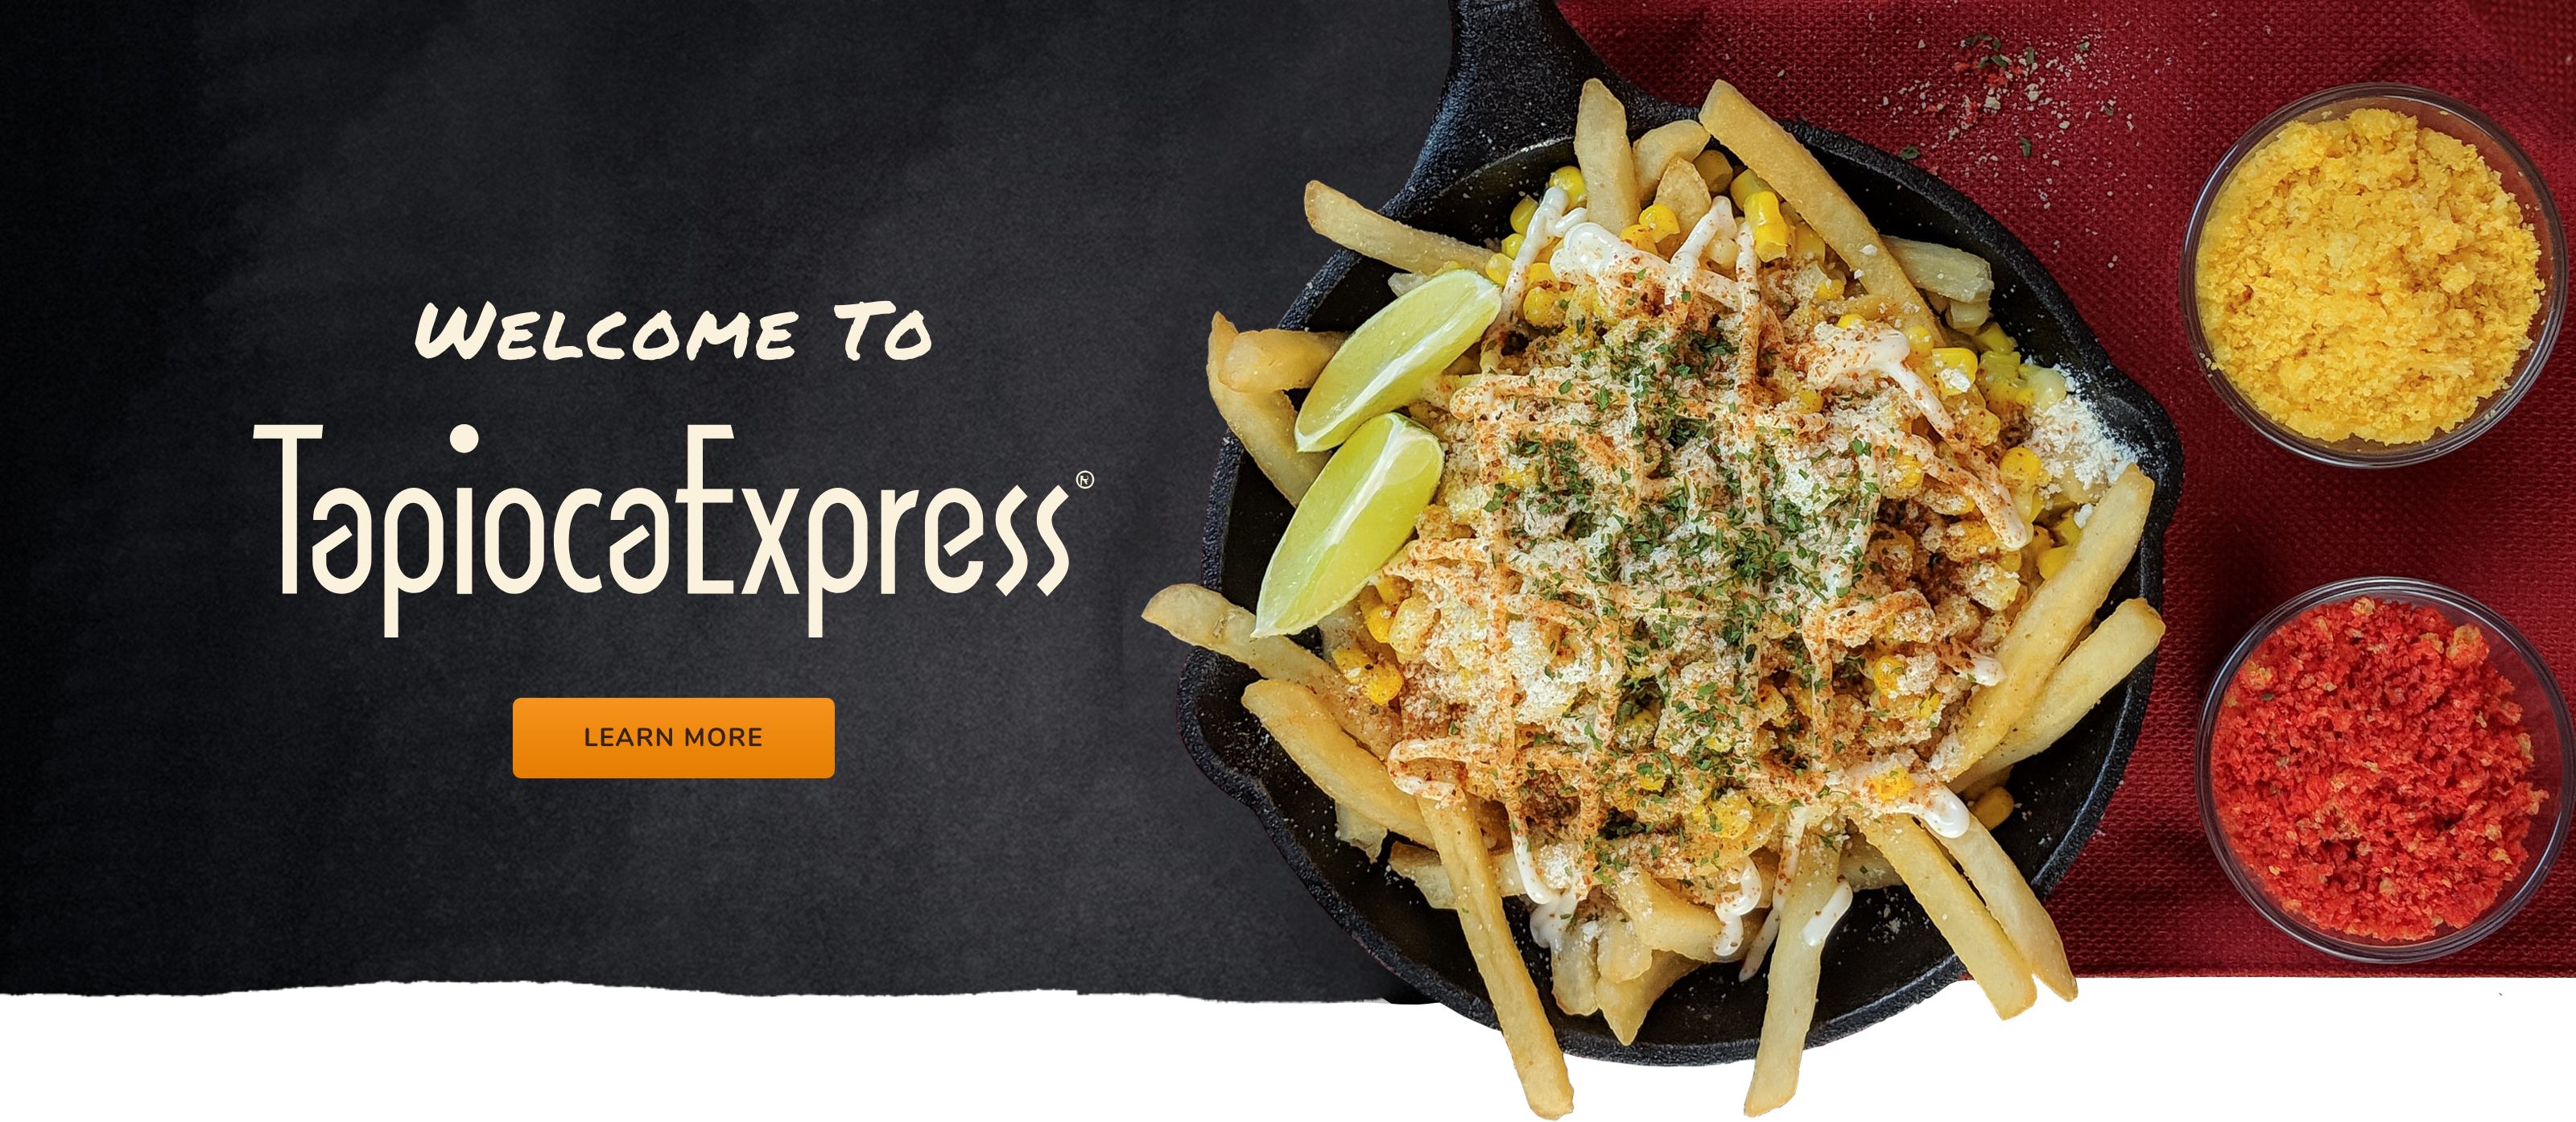 Tapioca Express Welcome Banner